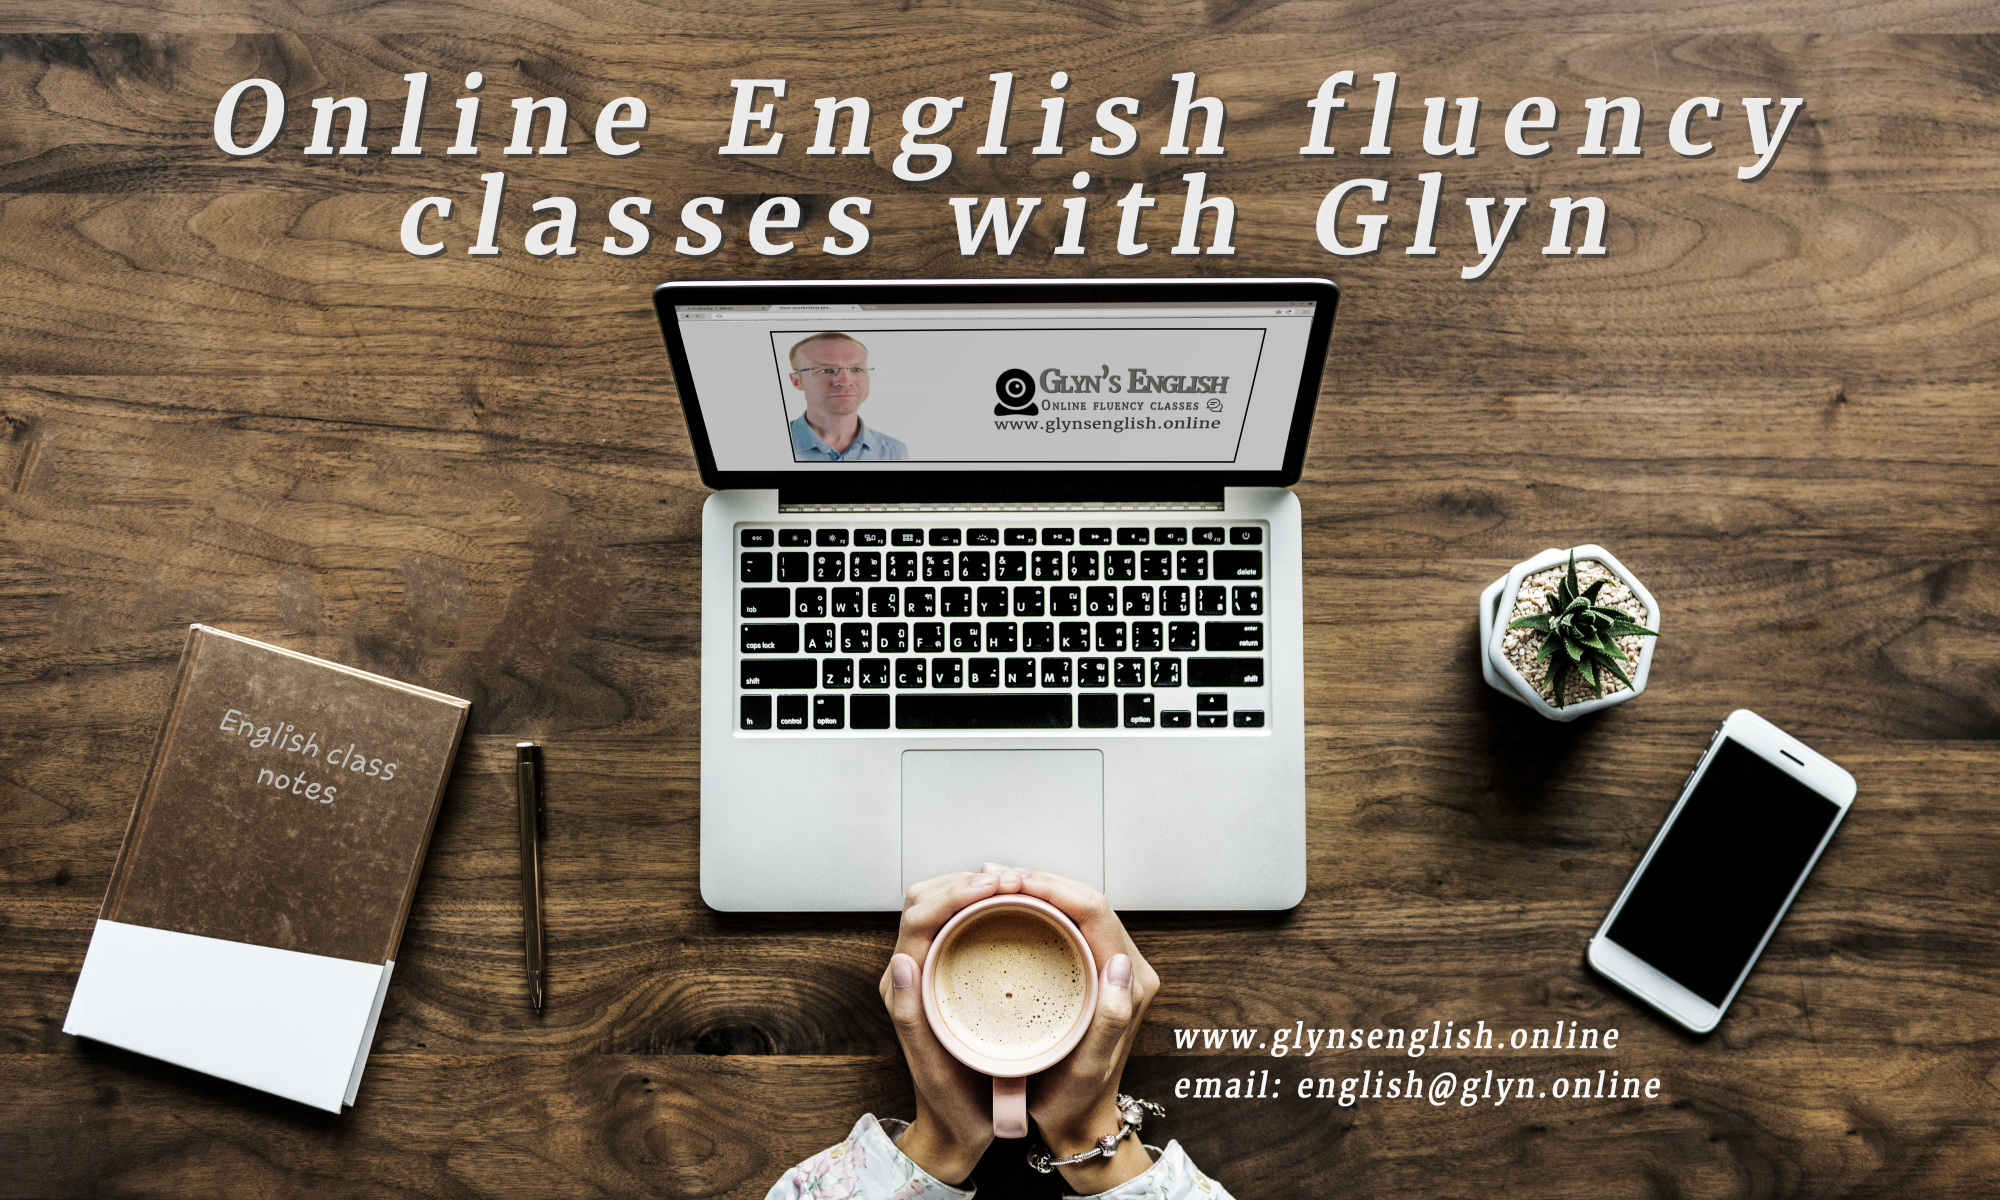 Glyn's English Online